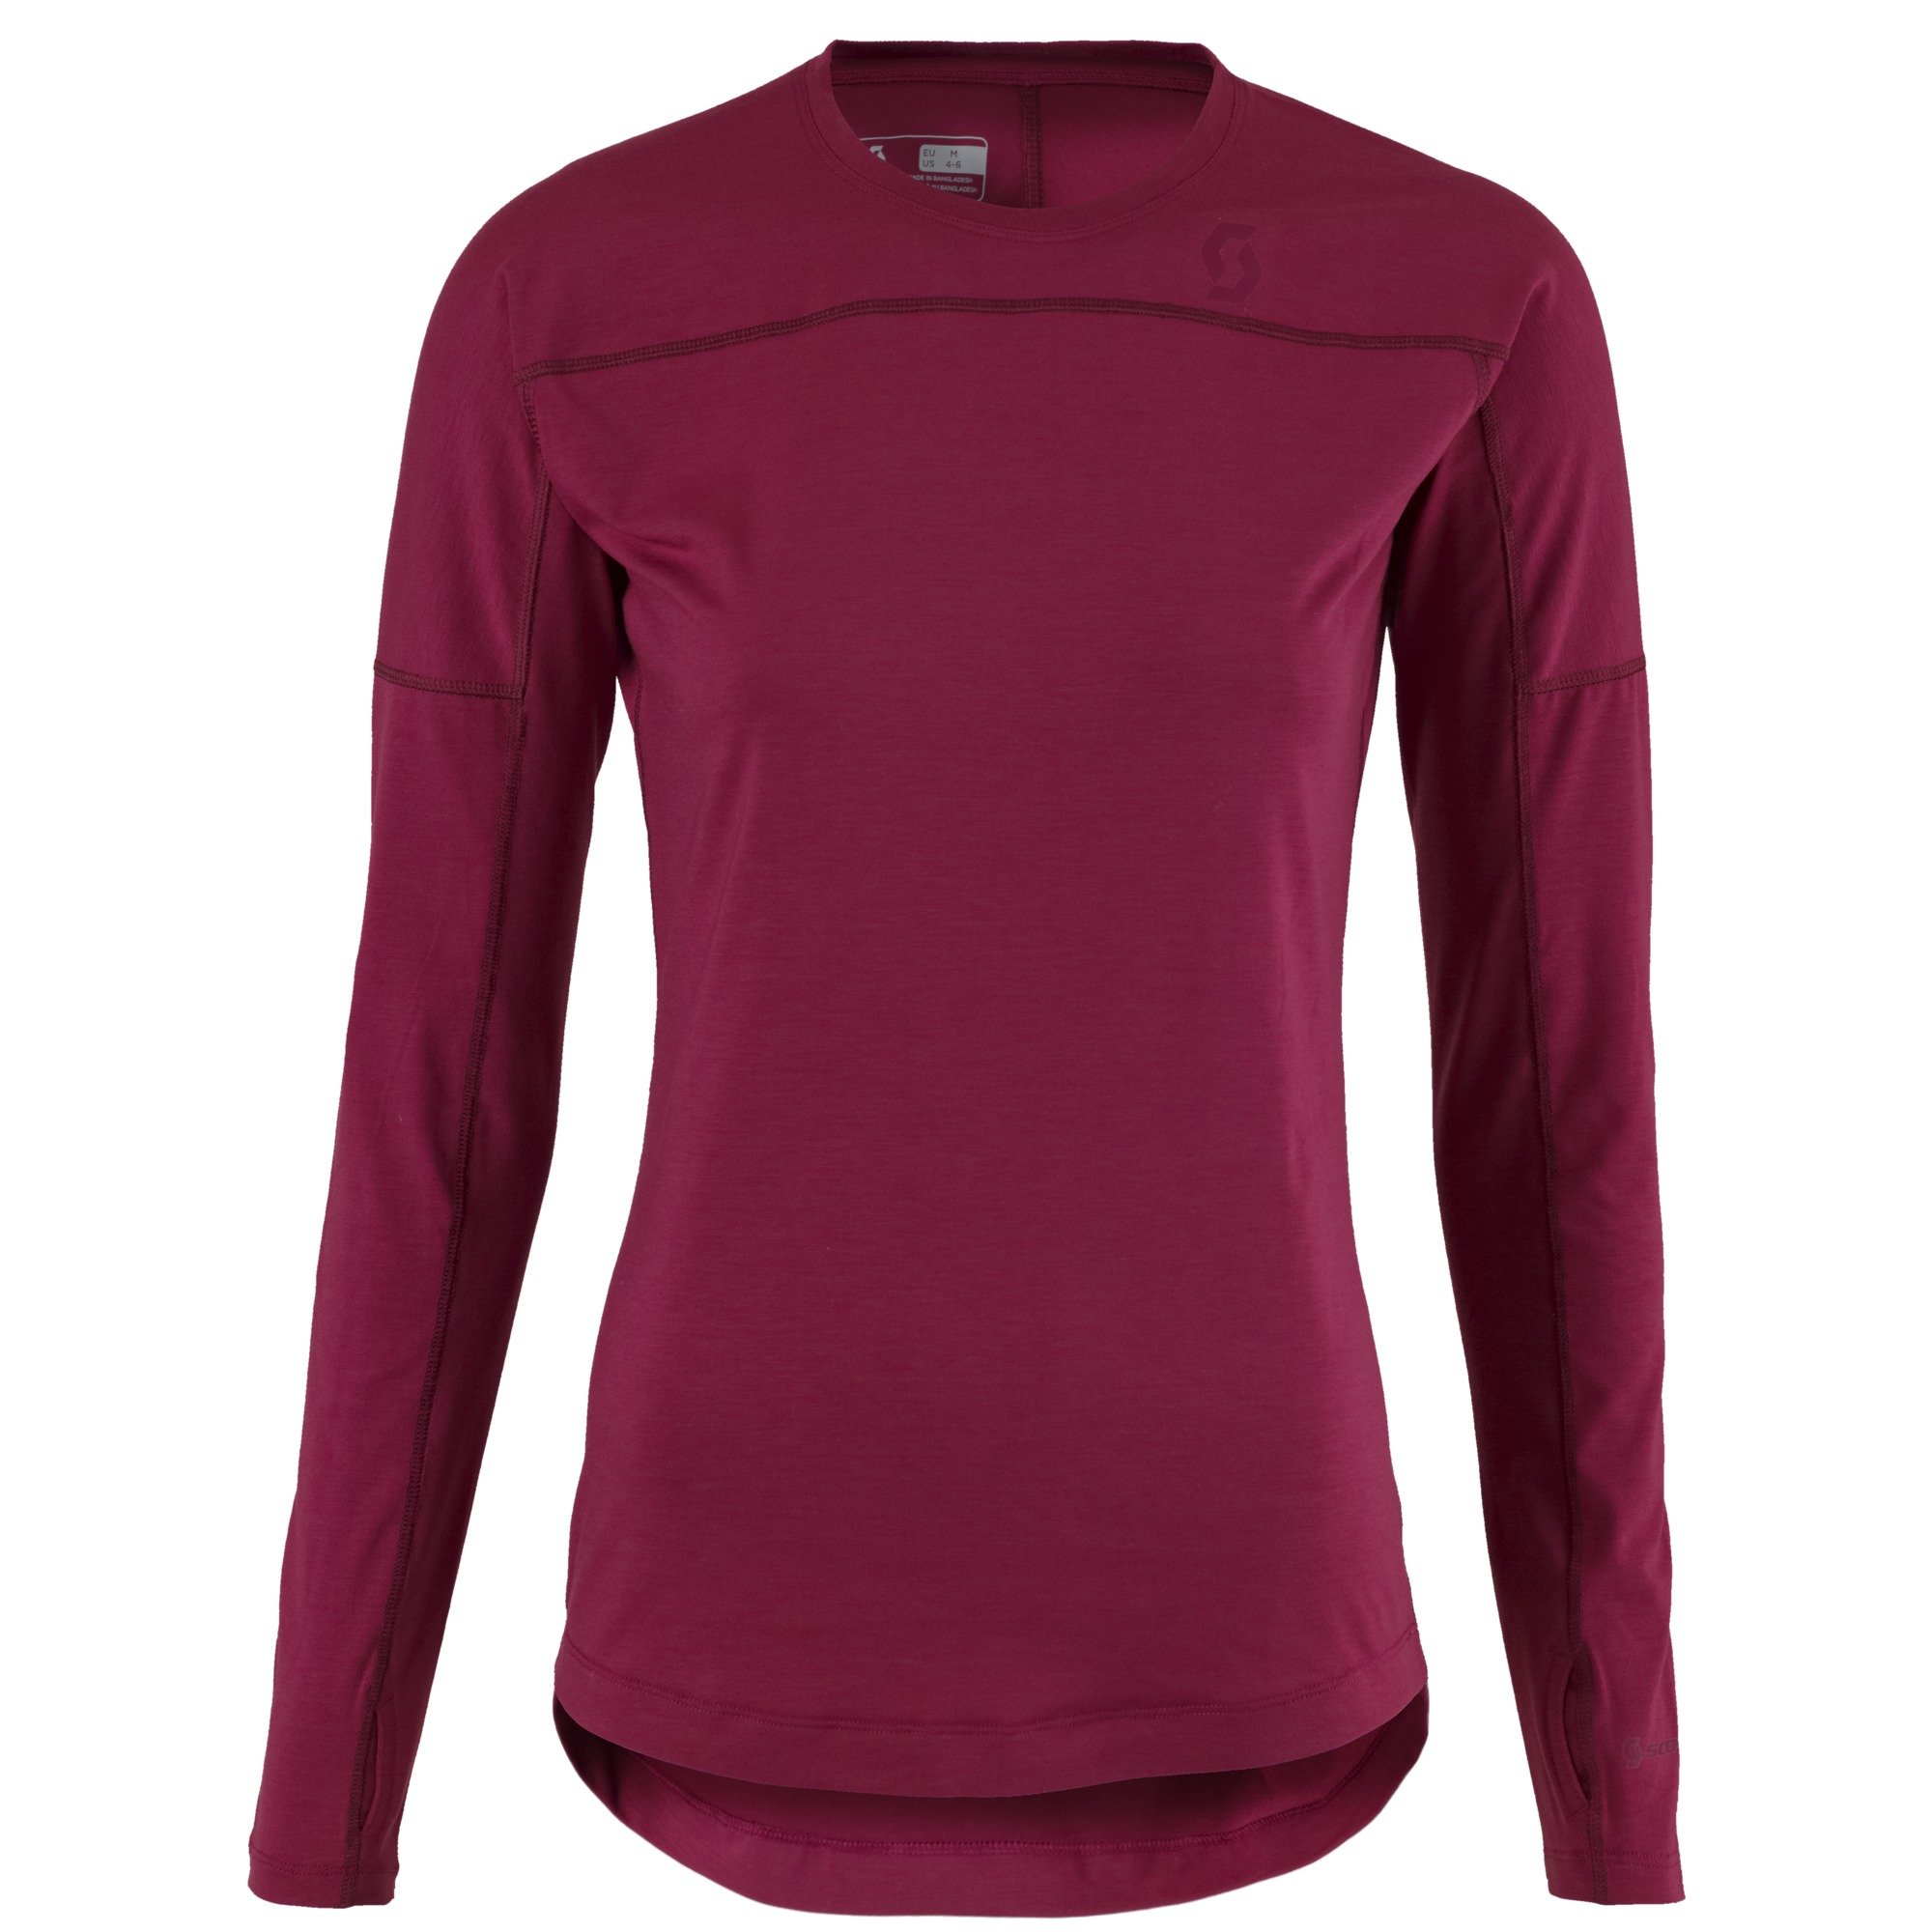 MAGLIA UNDERWEAR SCOTT BASE DRI CREW SHIRT WOMEN 244351 SANGRIA PURPLE70.jpg